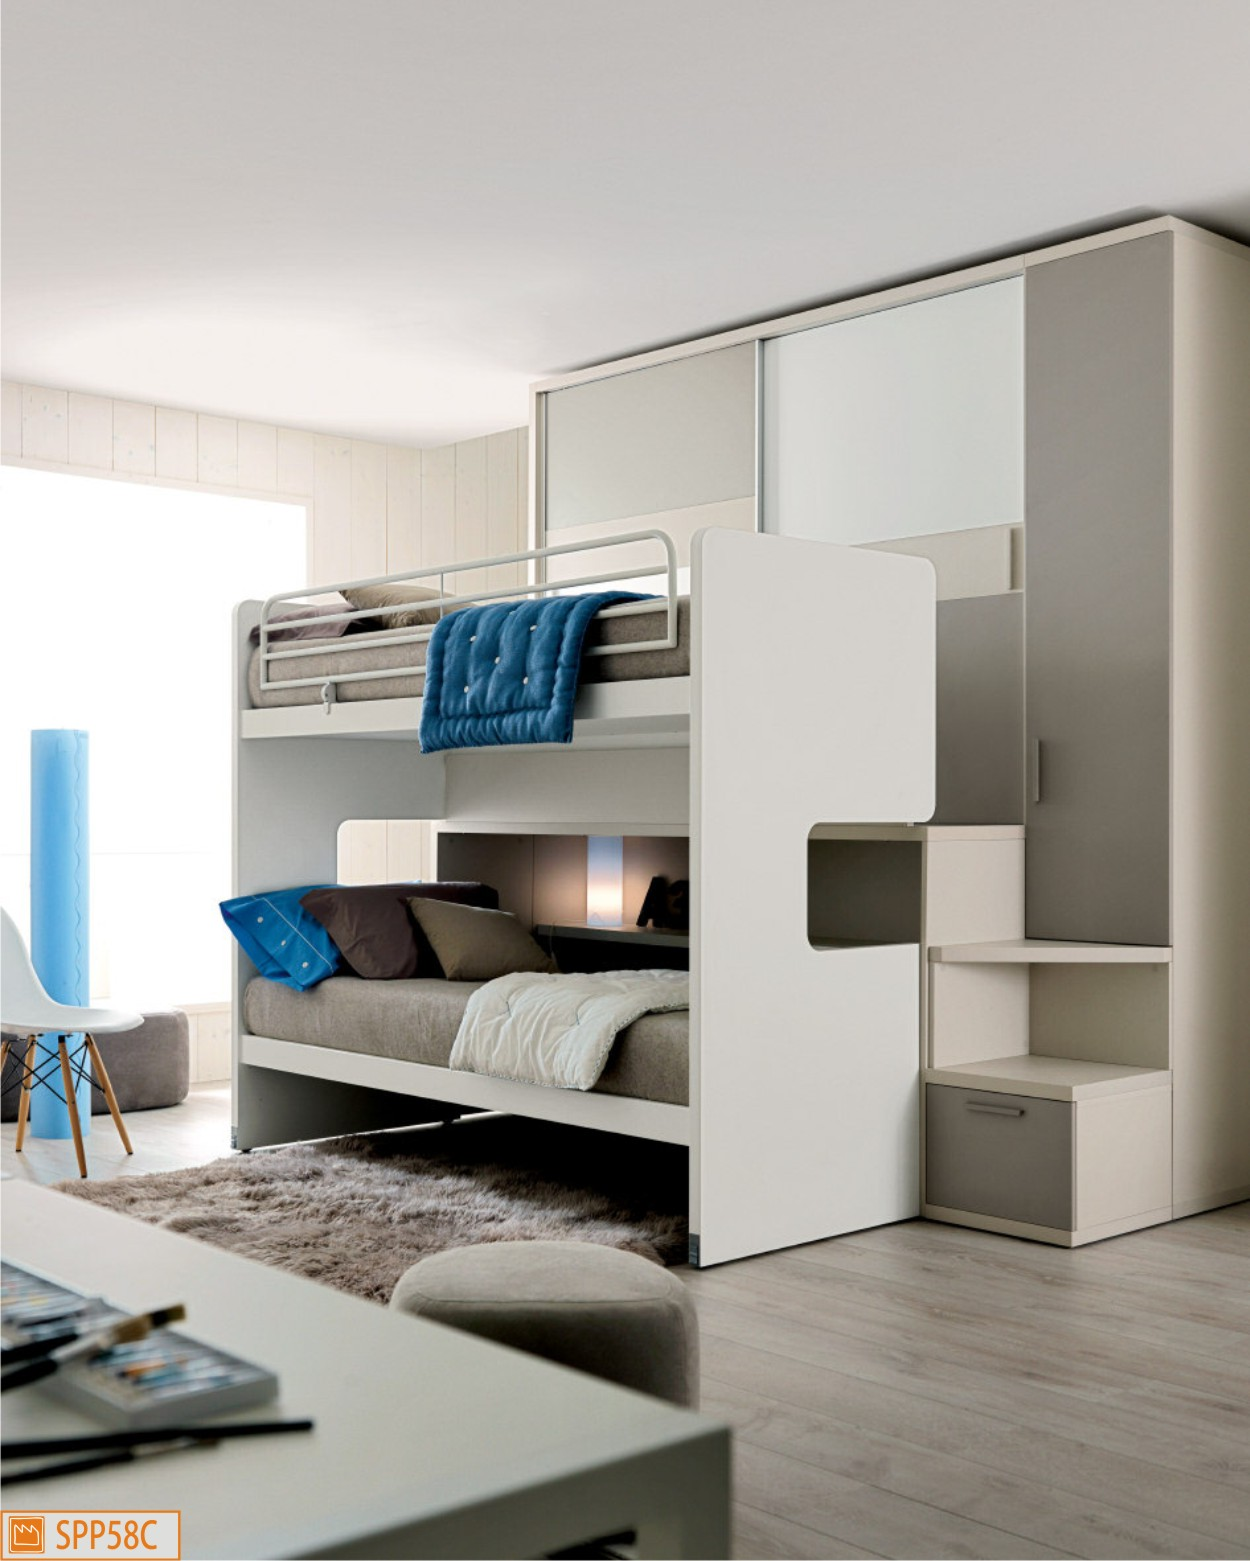 Cameretta a soppalco all in one roy con armadio - Armadio scorrevole ikea ...